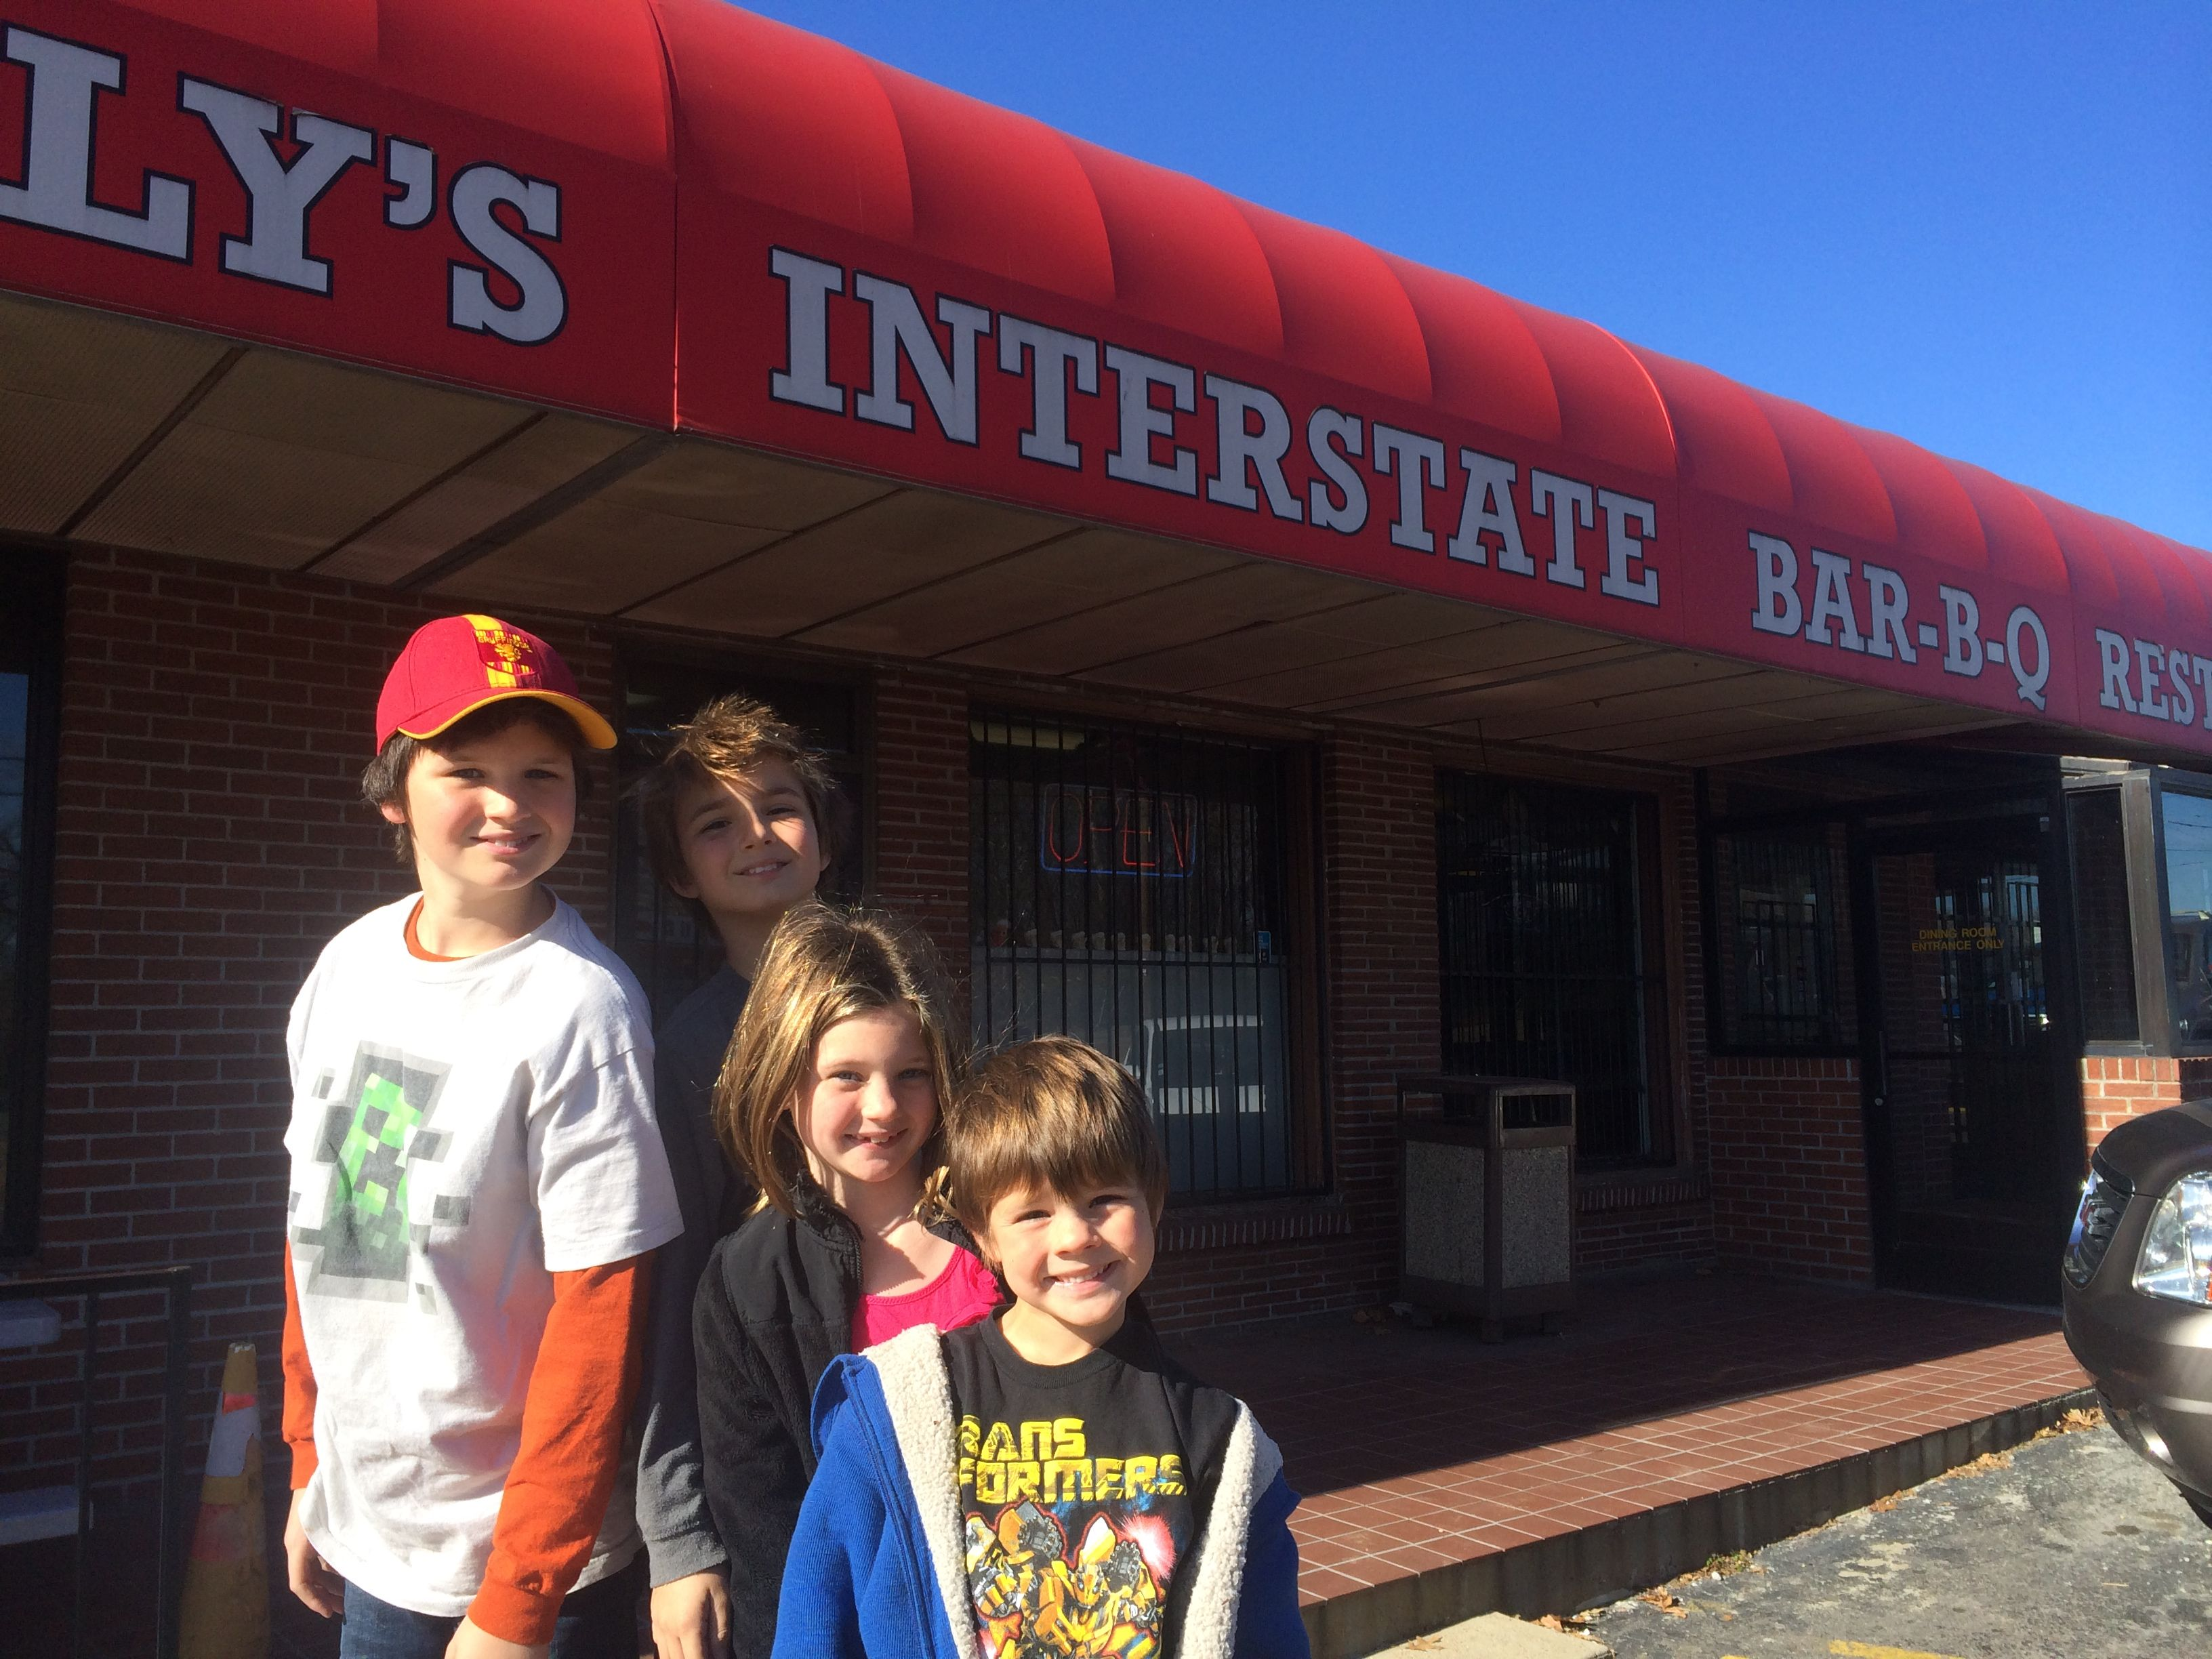 Neely's Interstate BBQ